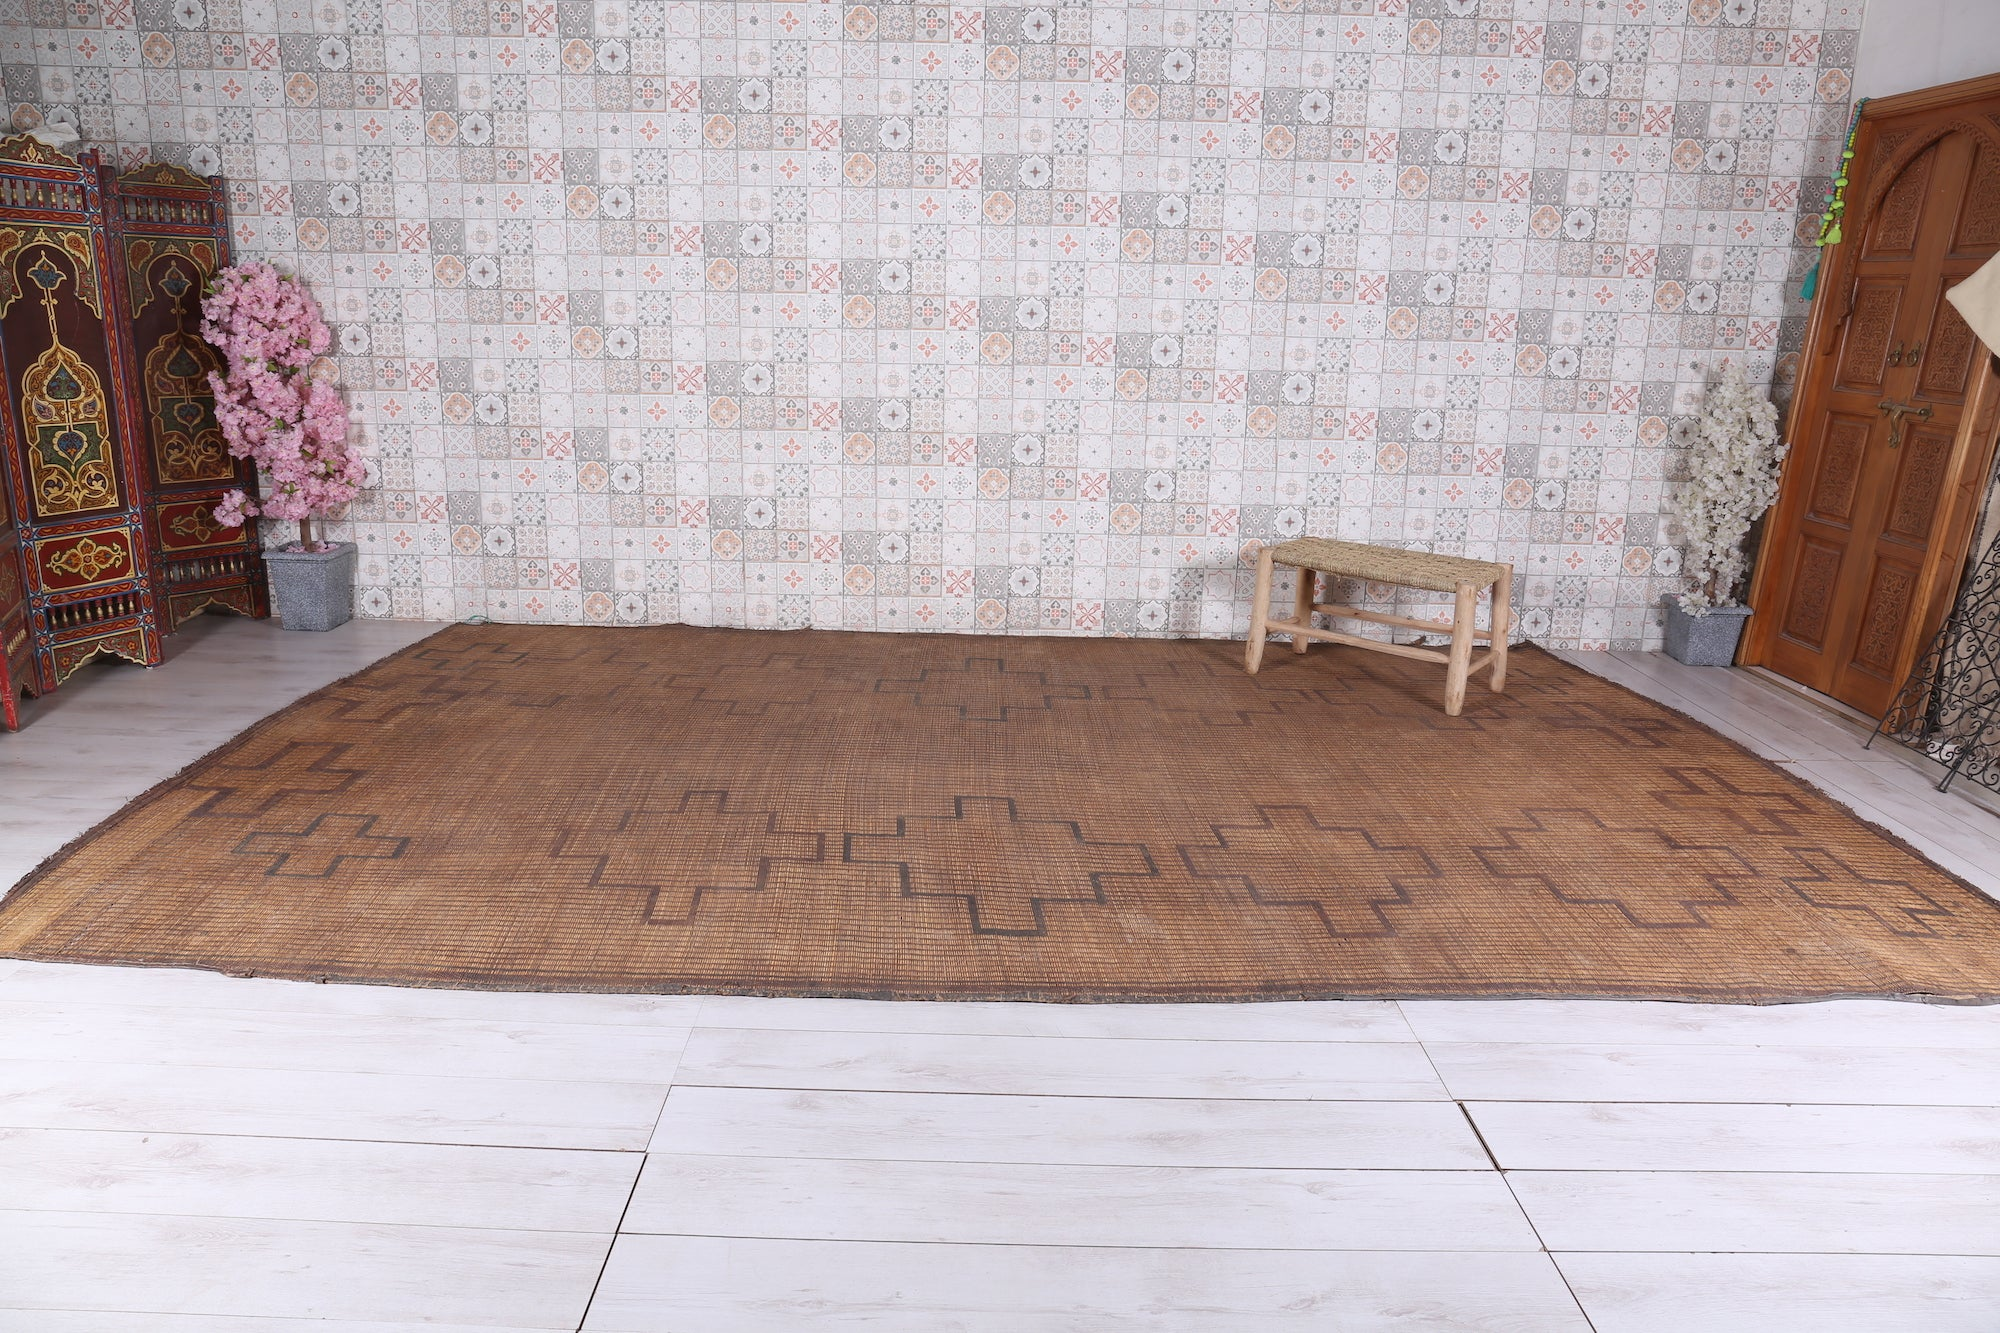 fabulous trim carpet leather products berber img vintage straw moroccan with mat hassira rug mats tuareg